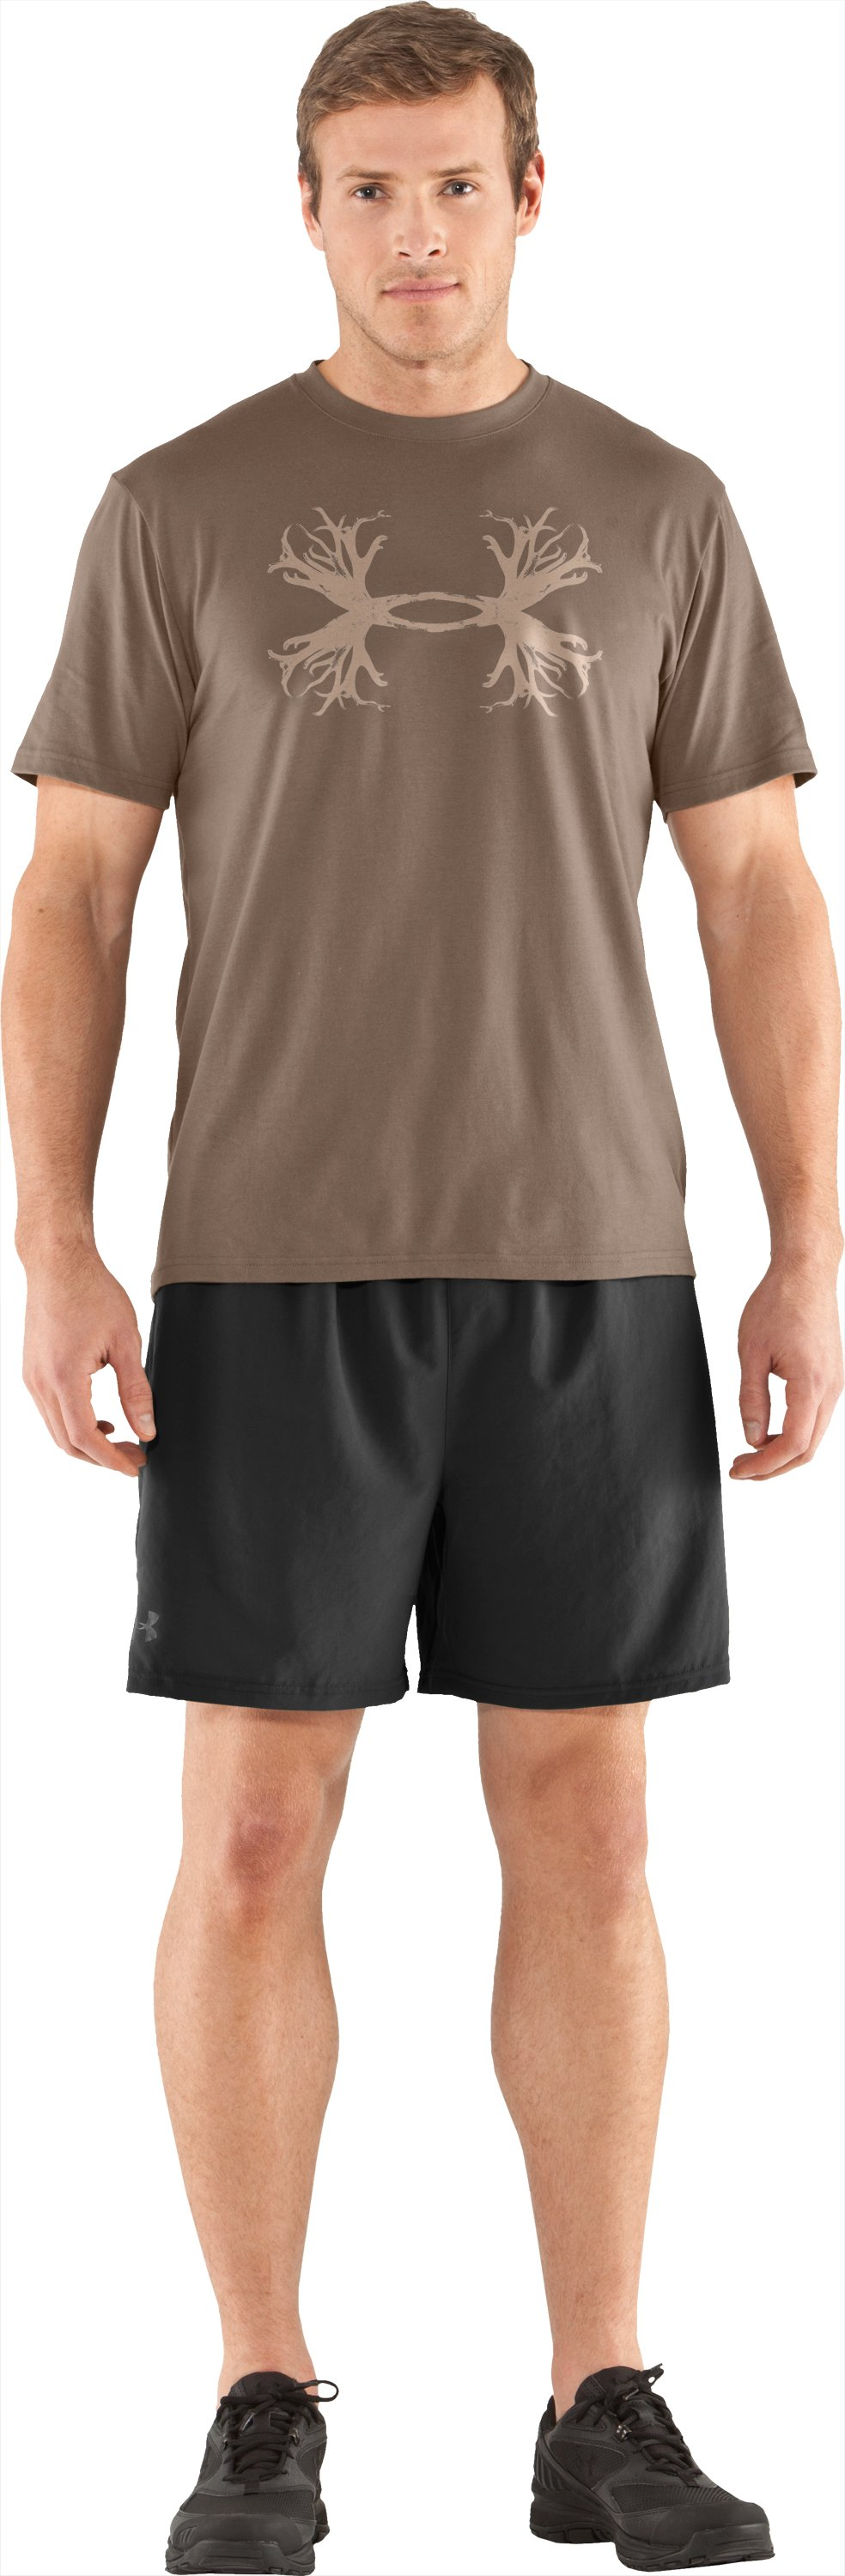 Men's UA Hunt Antler Logo T-Shirt, Uniform, Front